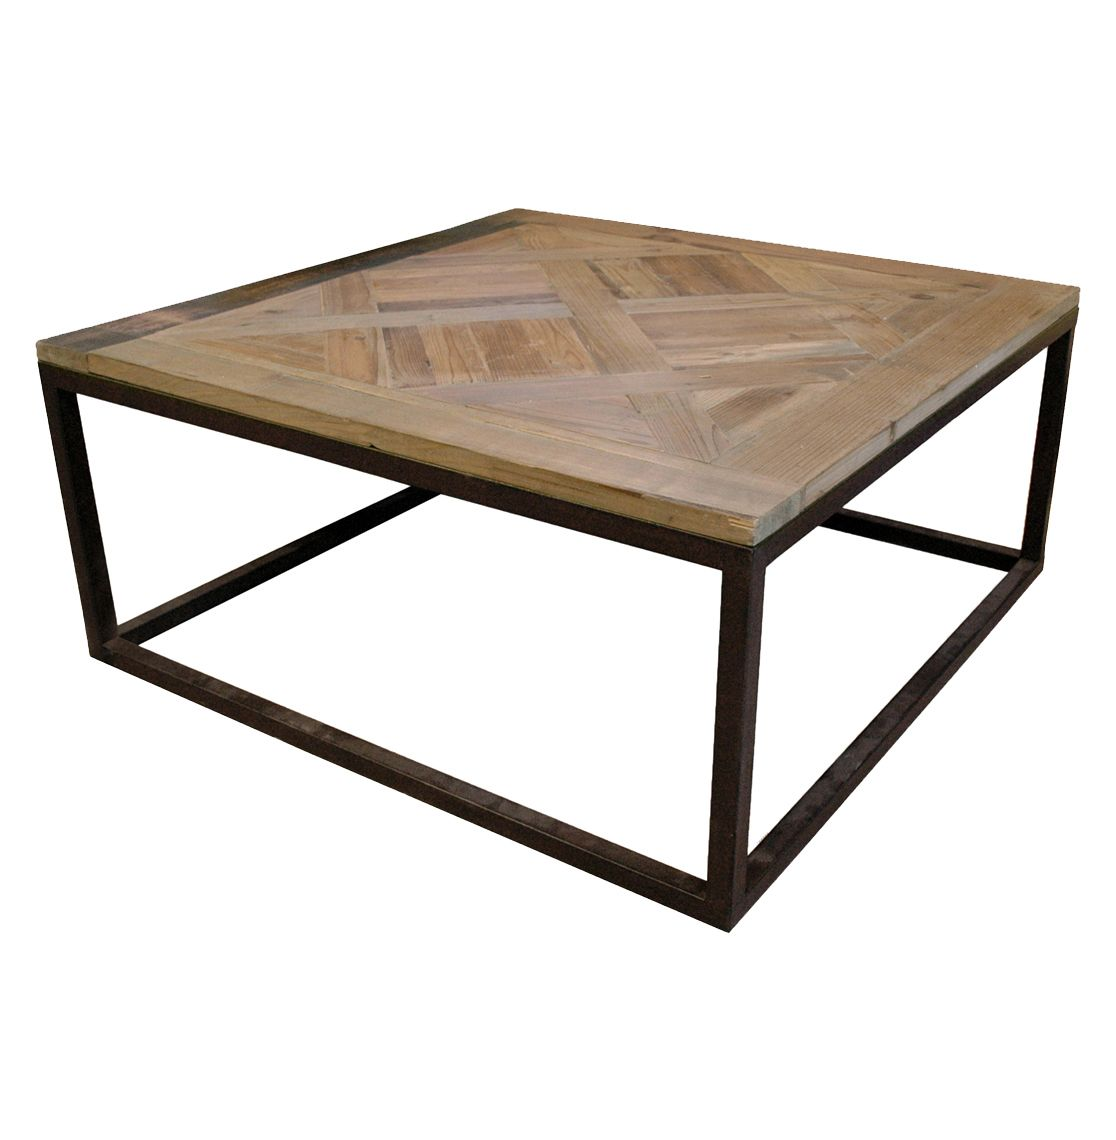 Gramercy Modern Rustic Reclaimed Parquet Wood Iron Square Coffee Table In 2021 Coffee Table Wood Coffee Table Reclaimed Wood Coffee Table [ 1140 x 1116 Pixel ]